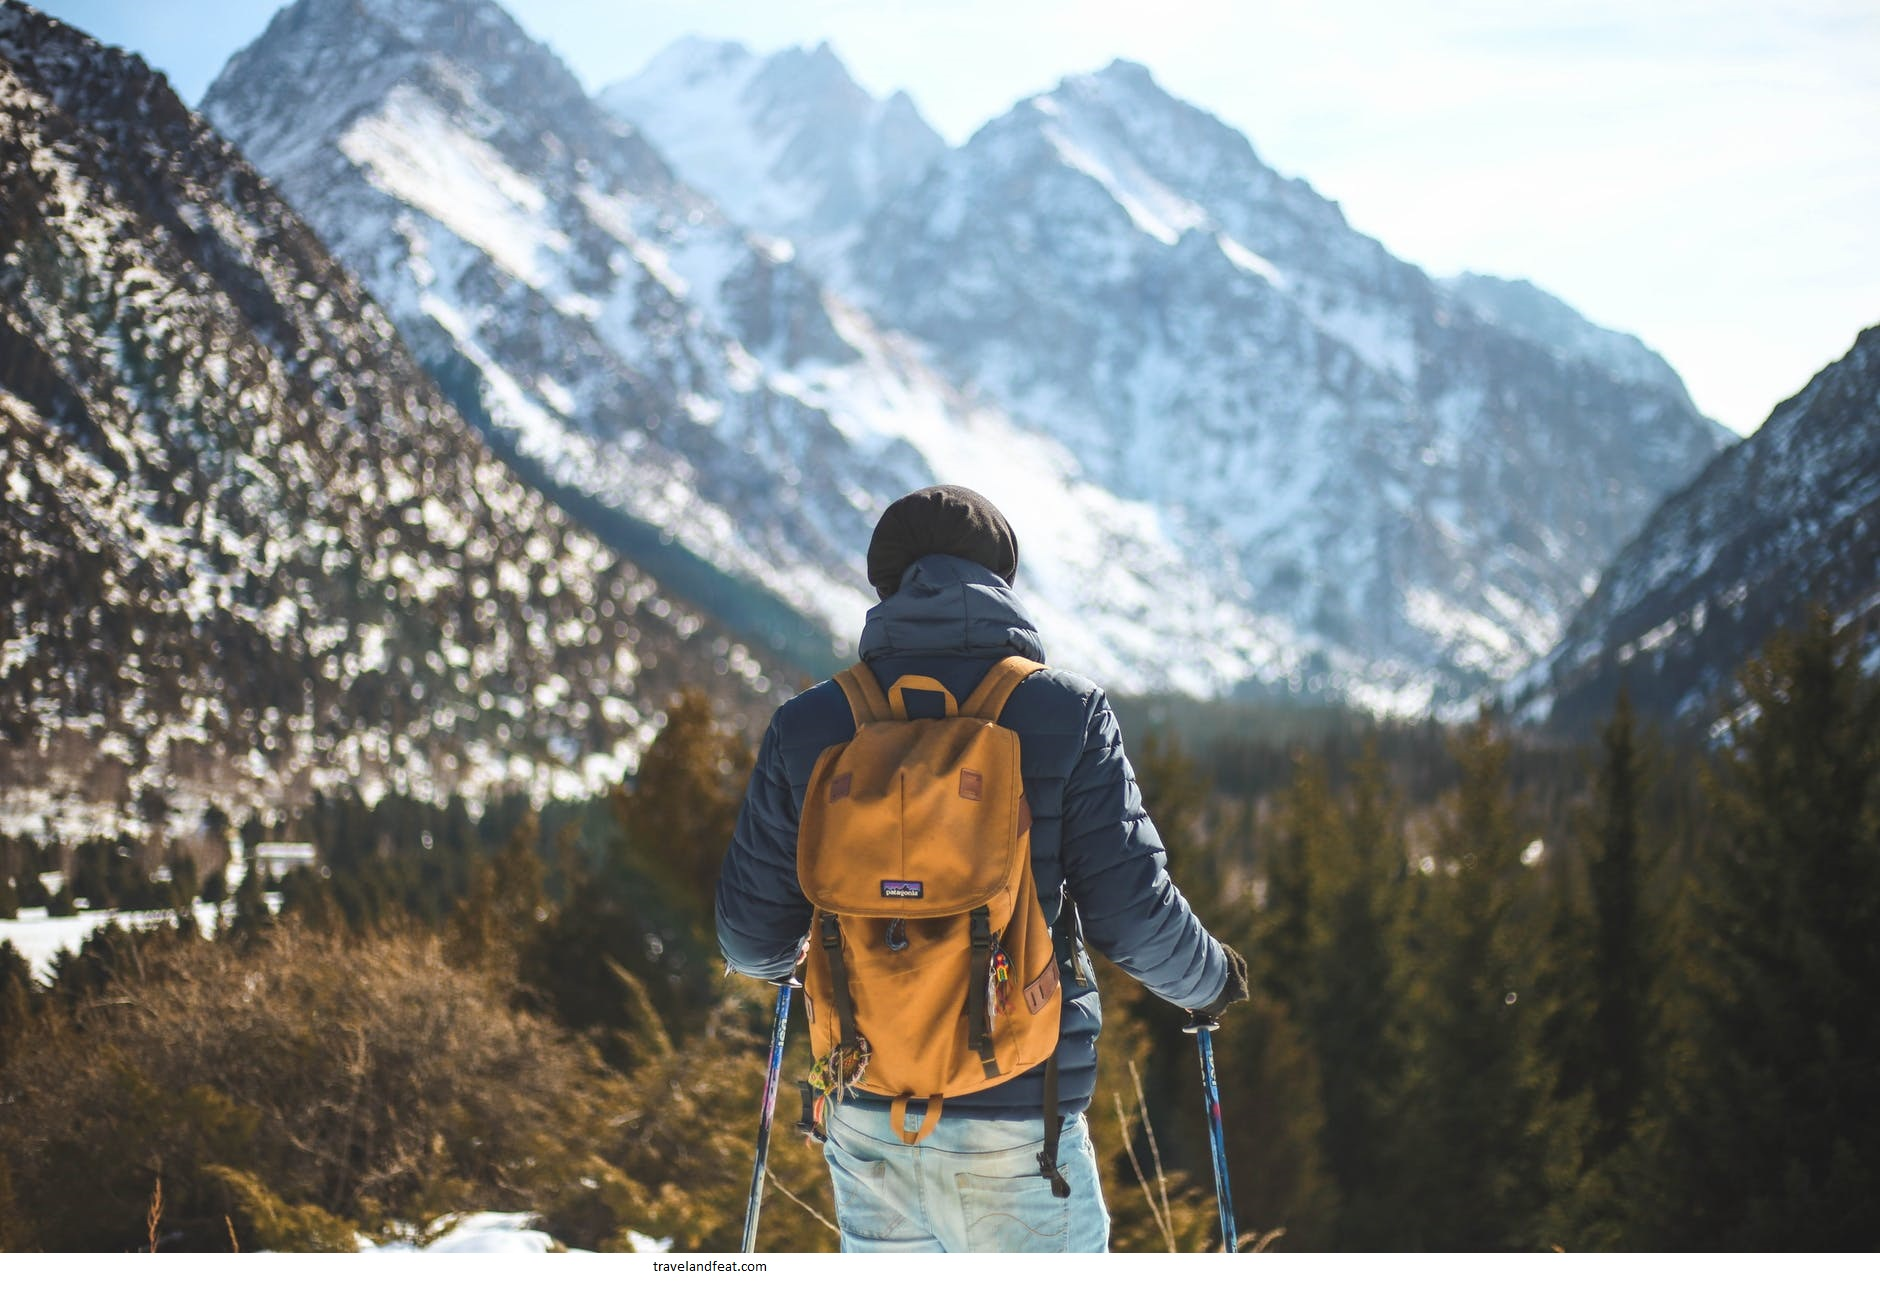 5 TIPS SO THAT YOUR HUNTING BACKPACK DOES NOT RUIN YOUR HUNT